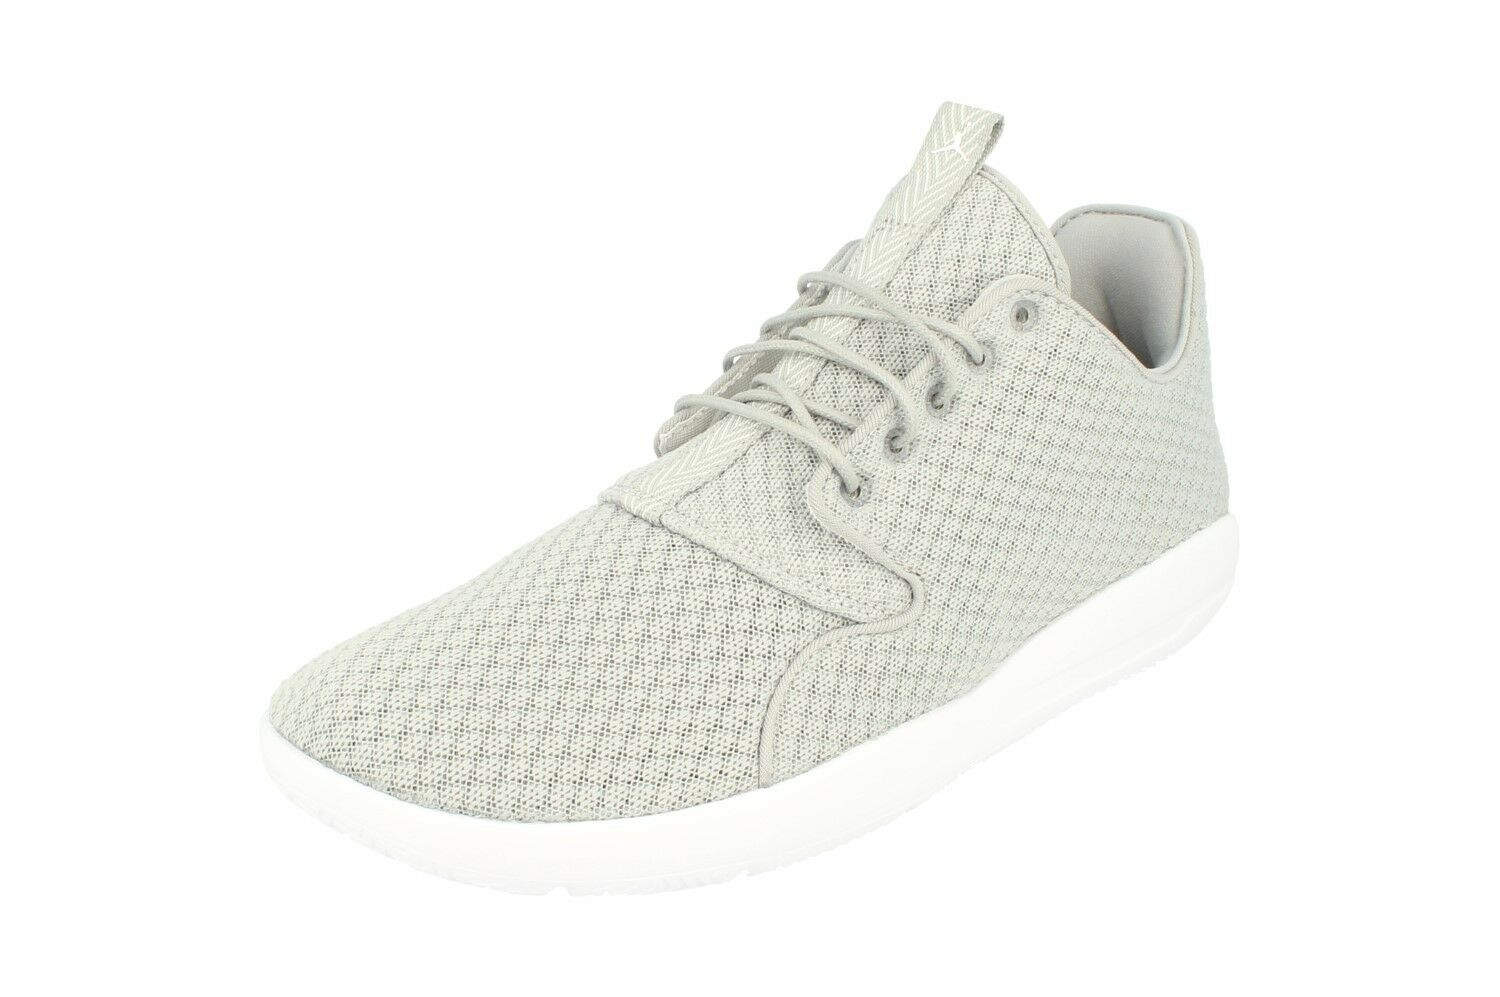 Nike Air Jordan Eclipse Mens Trainers 724010 Sneakers Shoes 033